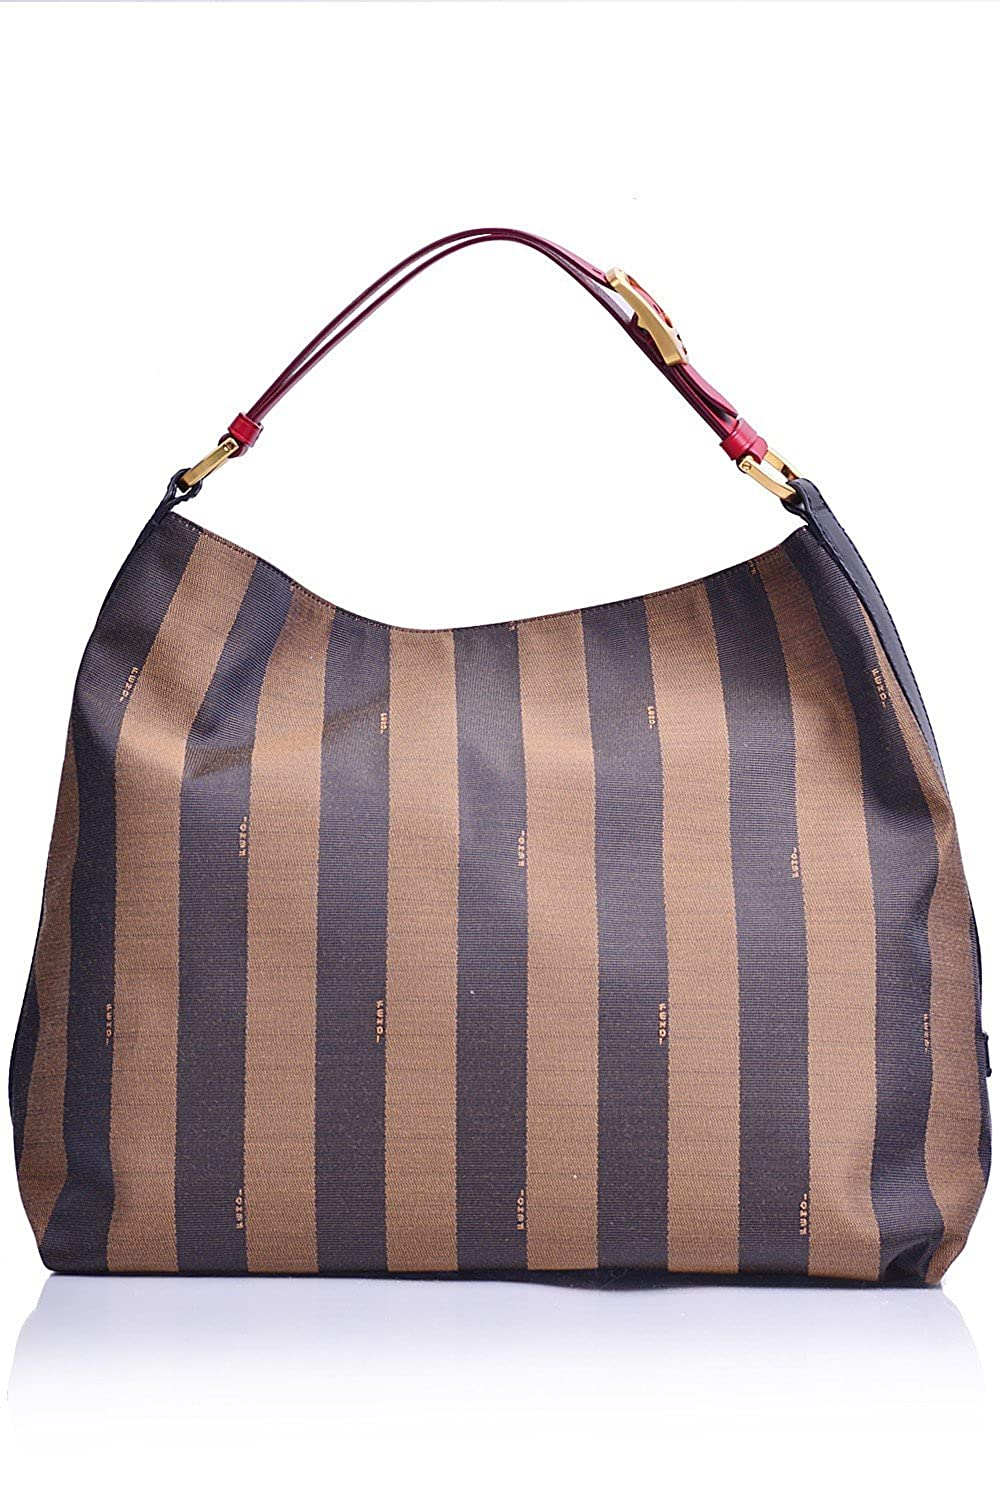 1f0d095f3e84 Amazon.com  Fendi Handbag Tobacco and Red Leather Pequin Stripe Hobo  Shoulder Bag 8BR653  Shoes